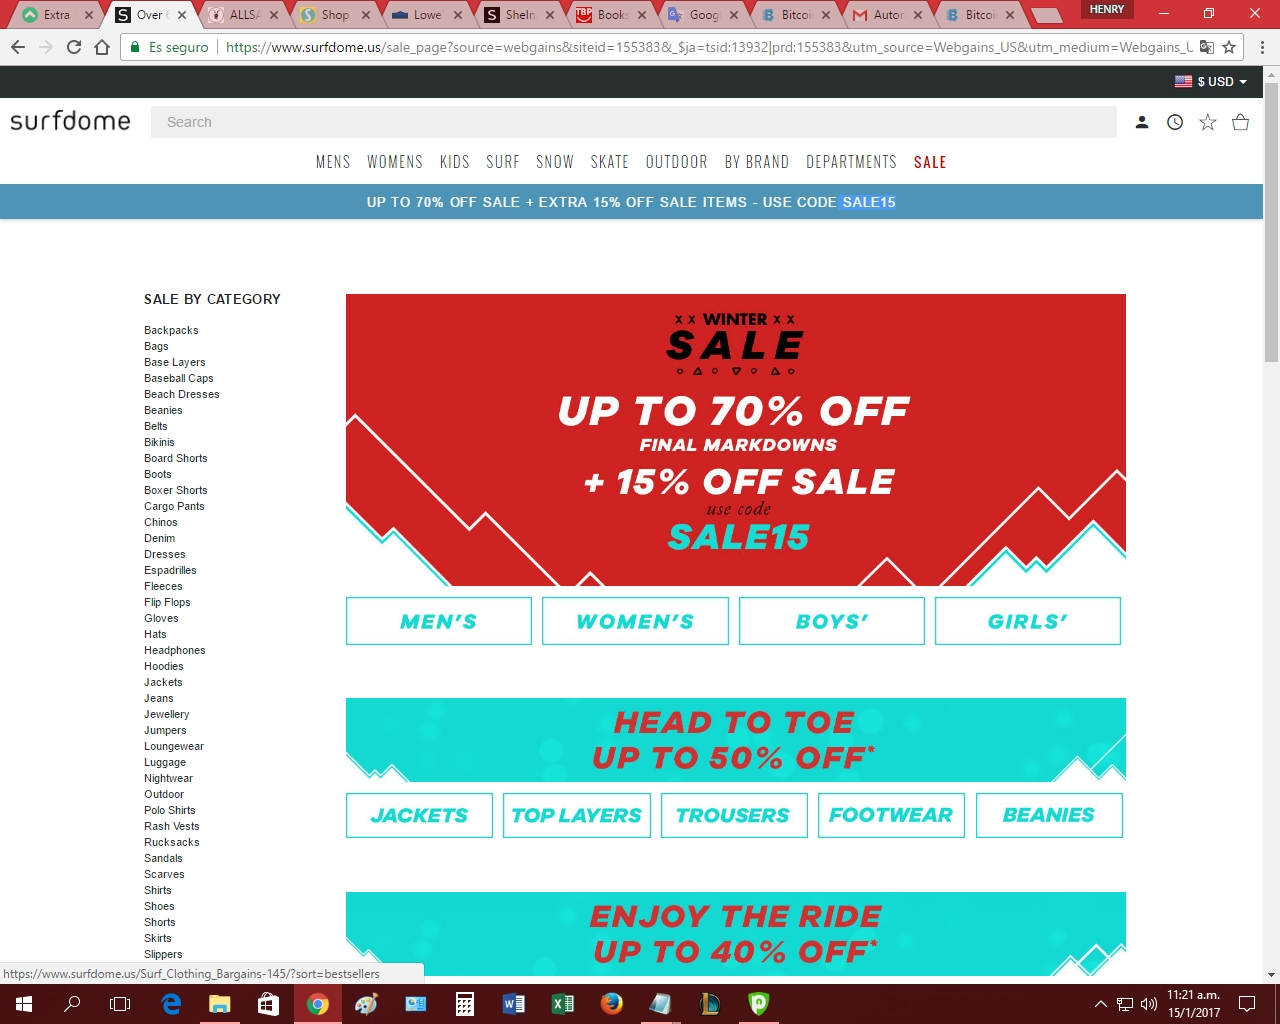 Surfdome coupon codes 2018